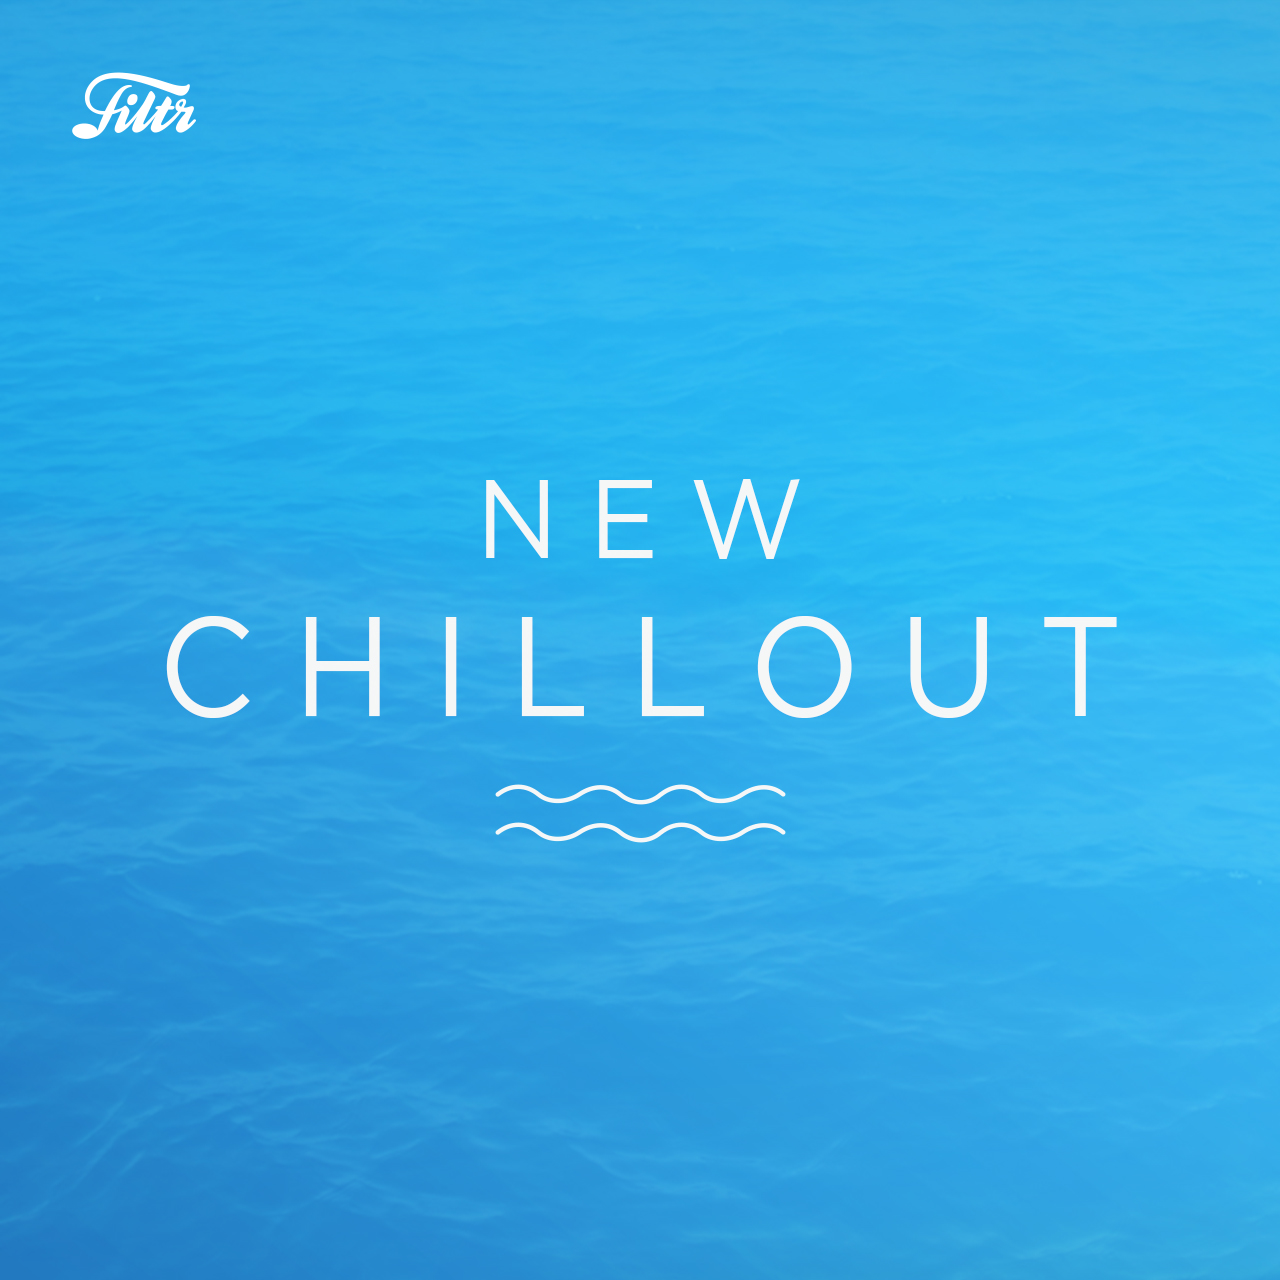 New-Chillout.jpg